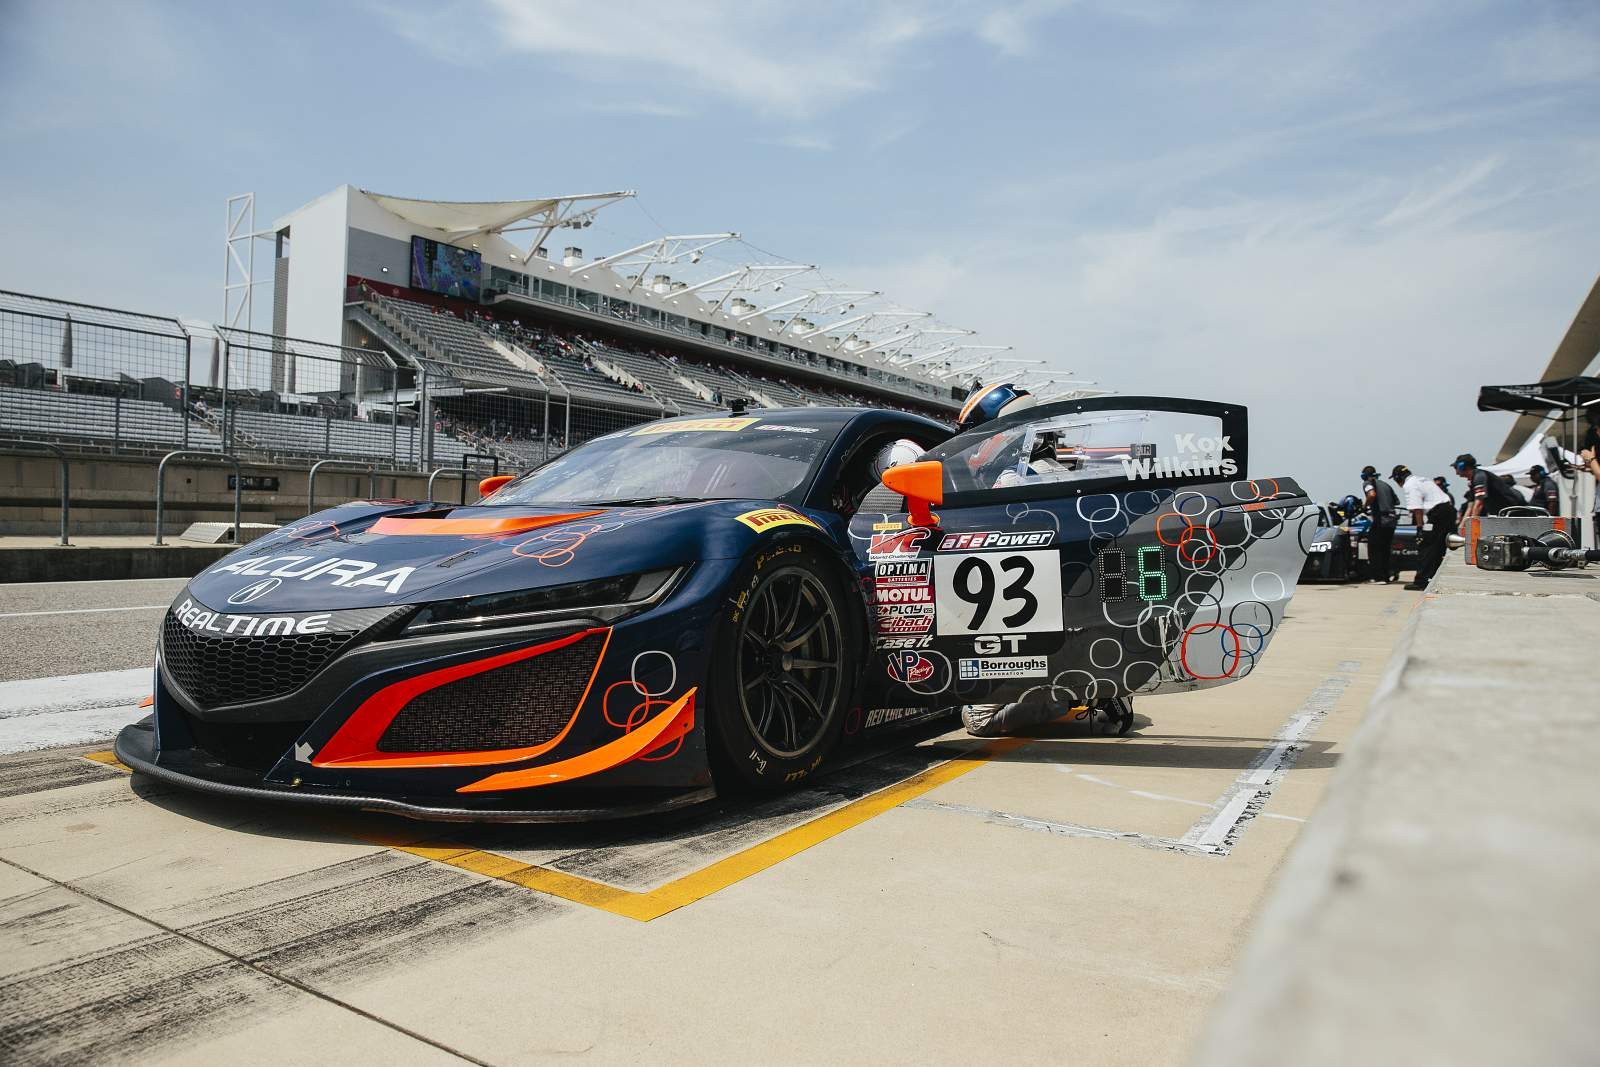 peter-kox-realtime-racing-pirelli-world-challenge-cota--040